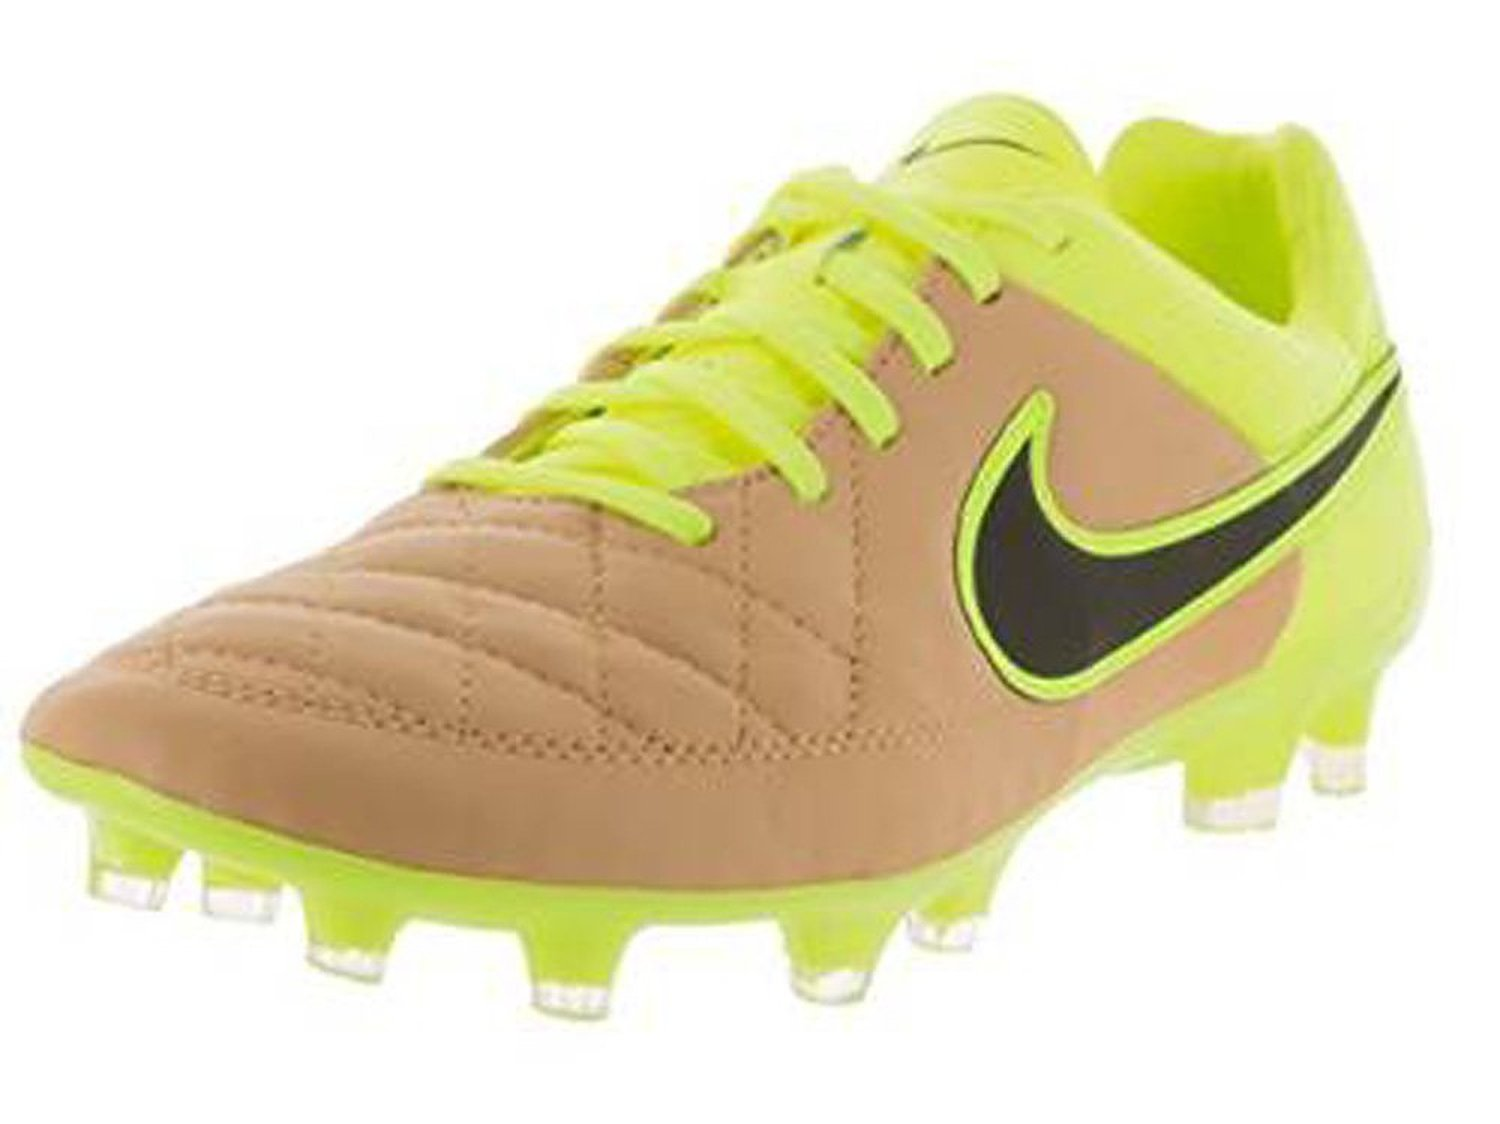 brand new ad36f adf5f Get Quotations · Nike Men s Tiempo Legacy Fg Soccer Cleat